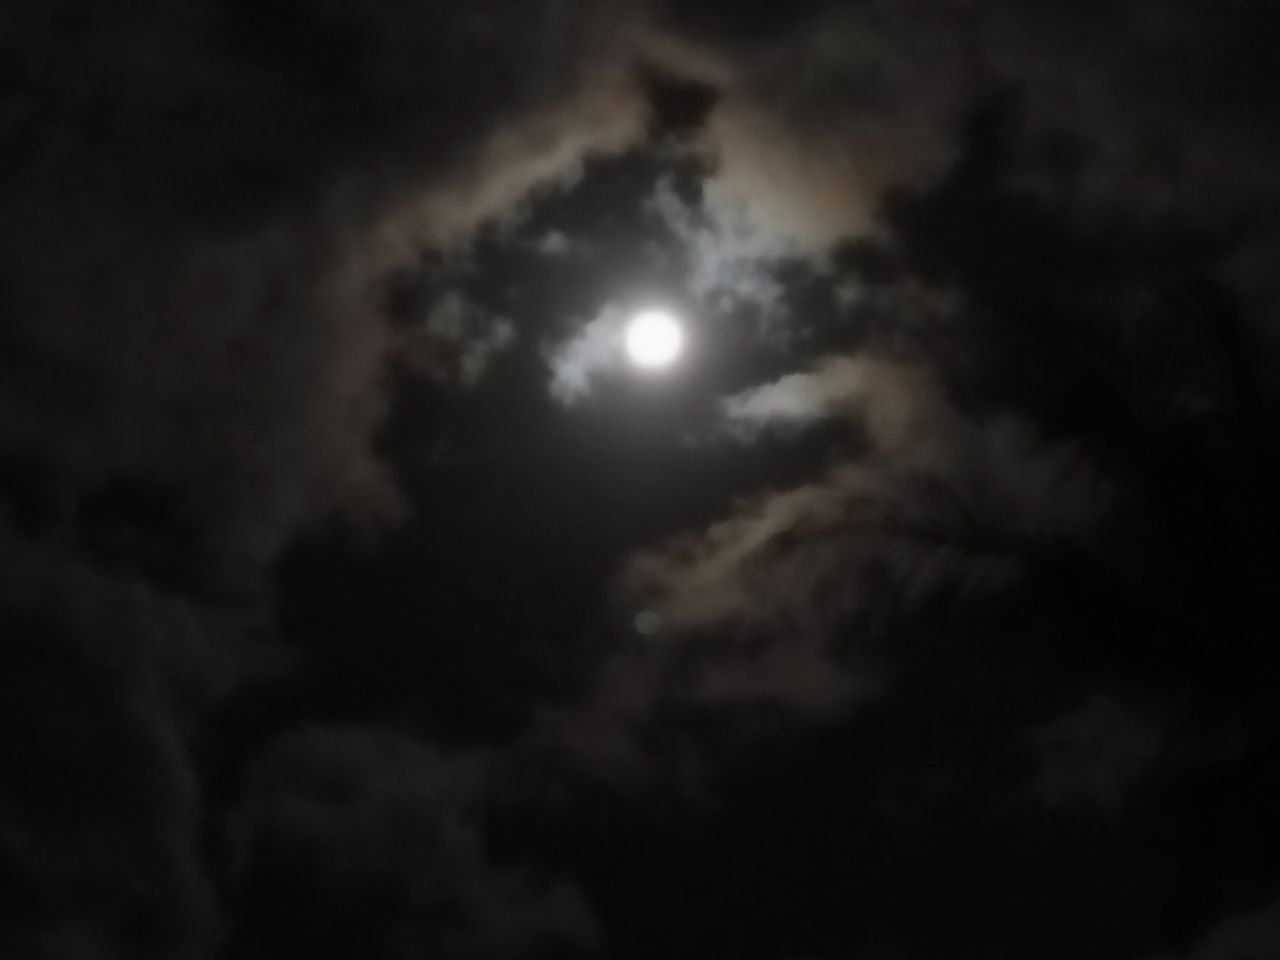 cloud - sky, sky, nature, low angle view, night, scenics, beauty in nature, moon, majestic, no people, sky only, dramatic sky, tranquility, outdoors, tranquil scene, astronomy, space, space exploration